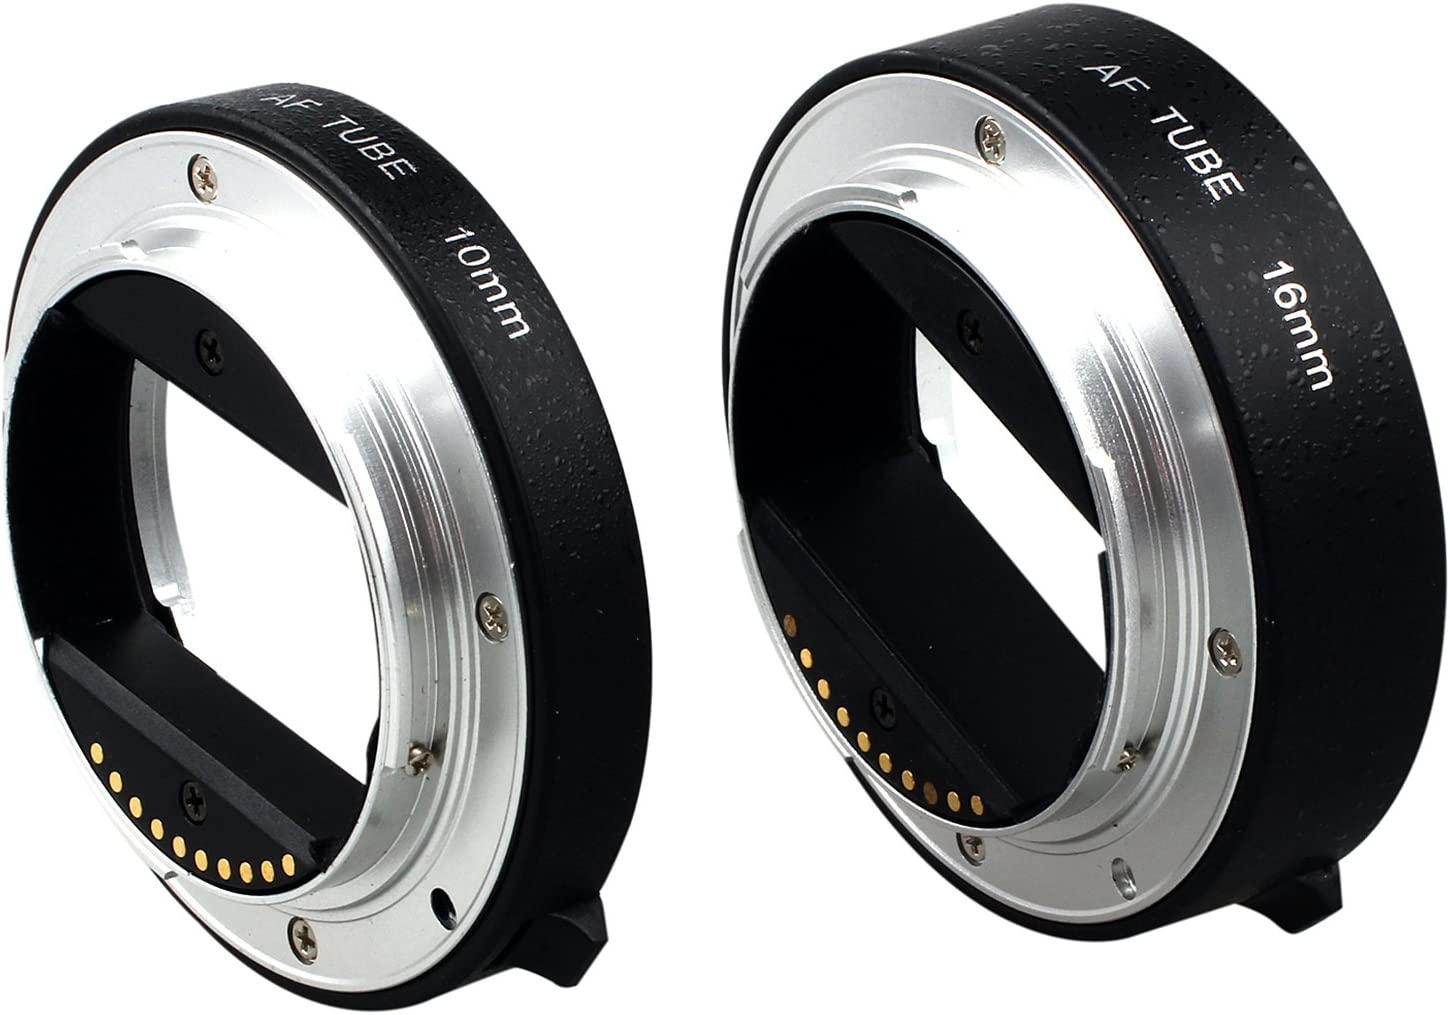 Vaorwne Black Metal AF Auto-Focus Macro Extension Tube Set 10mm/&16mm for NEX E-Mount Camera NEX 3//3N//5//5N and Full Frame A7 A7S//A7SII